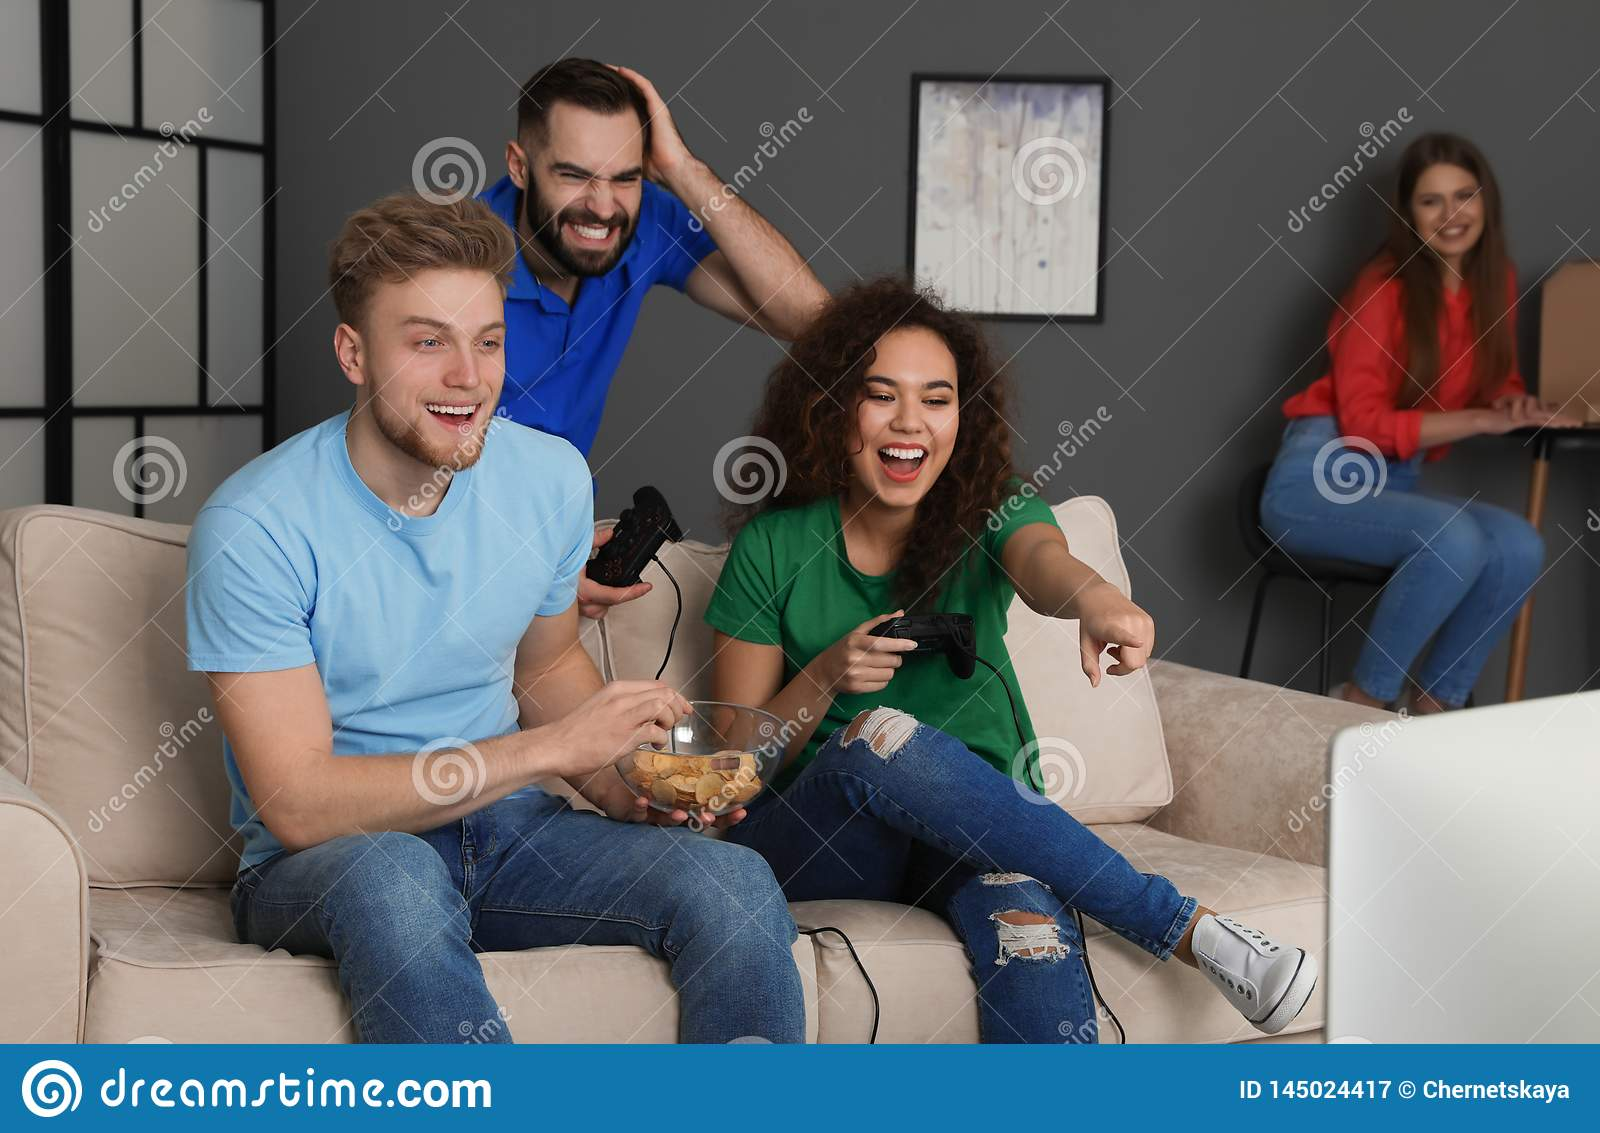 Emotional friends playing video games